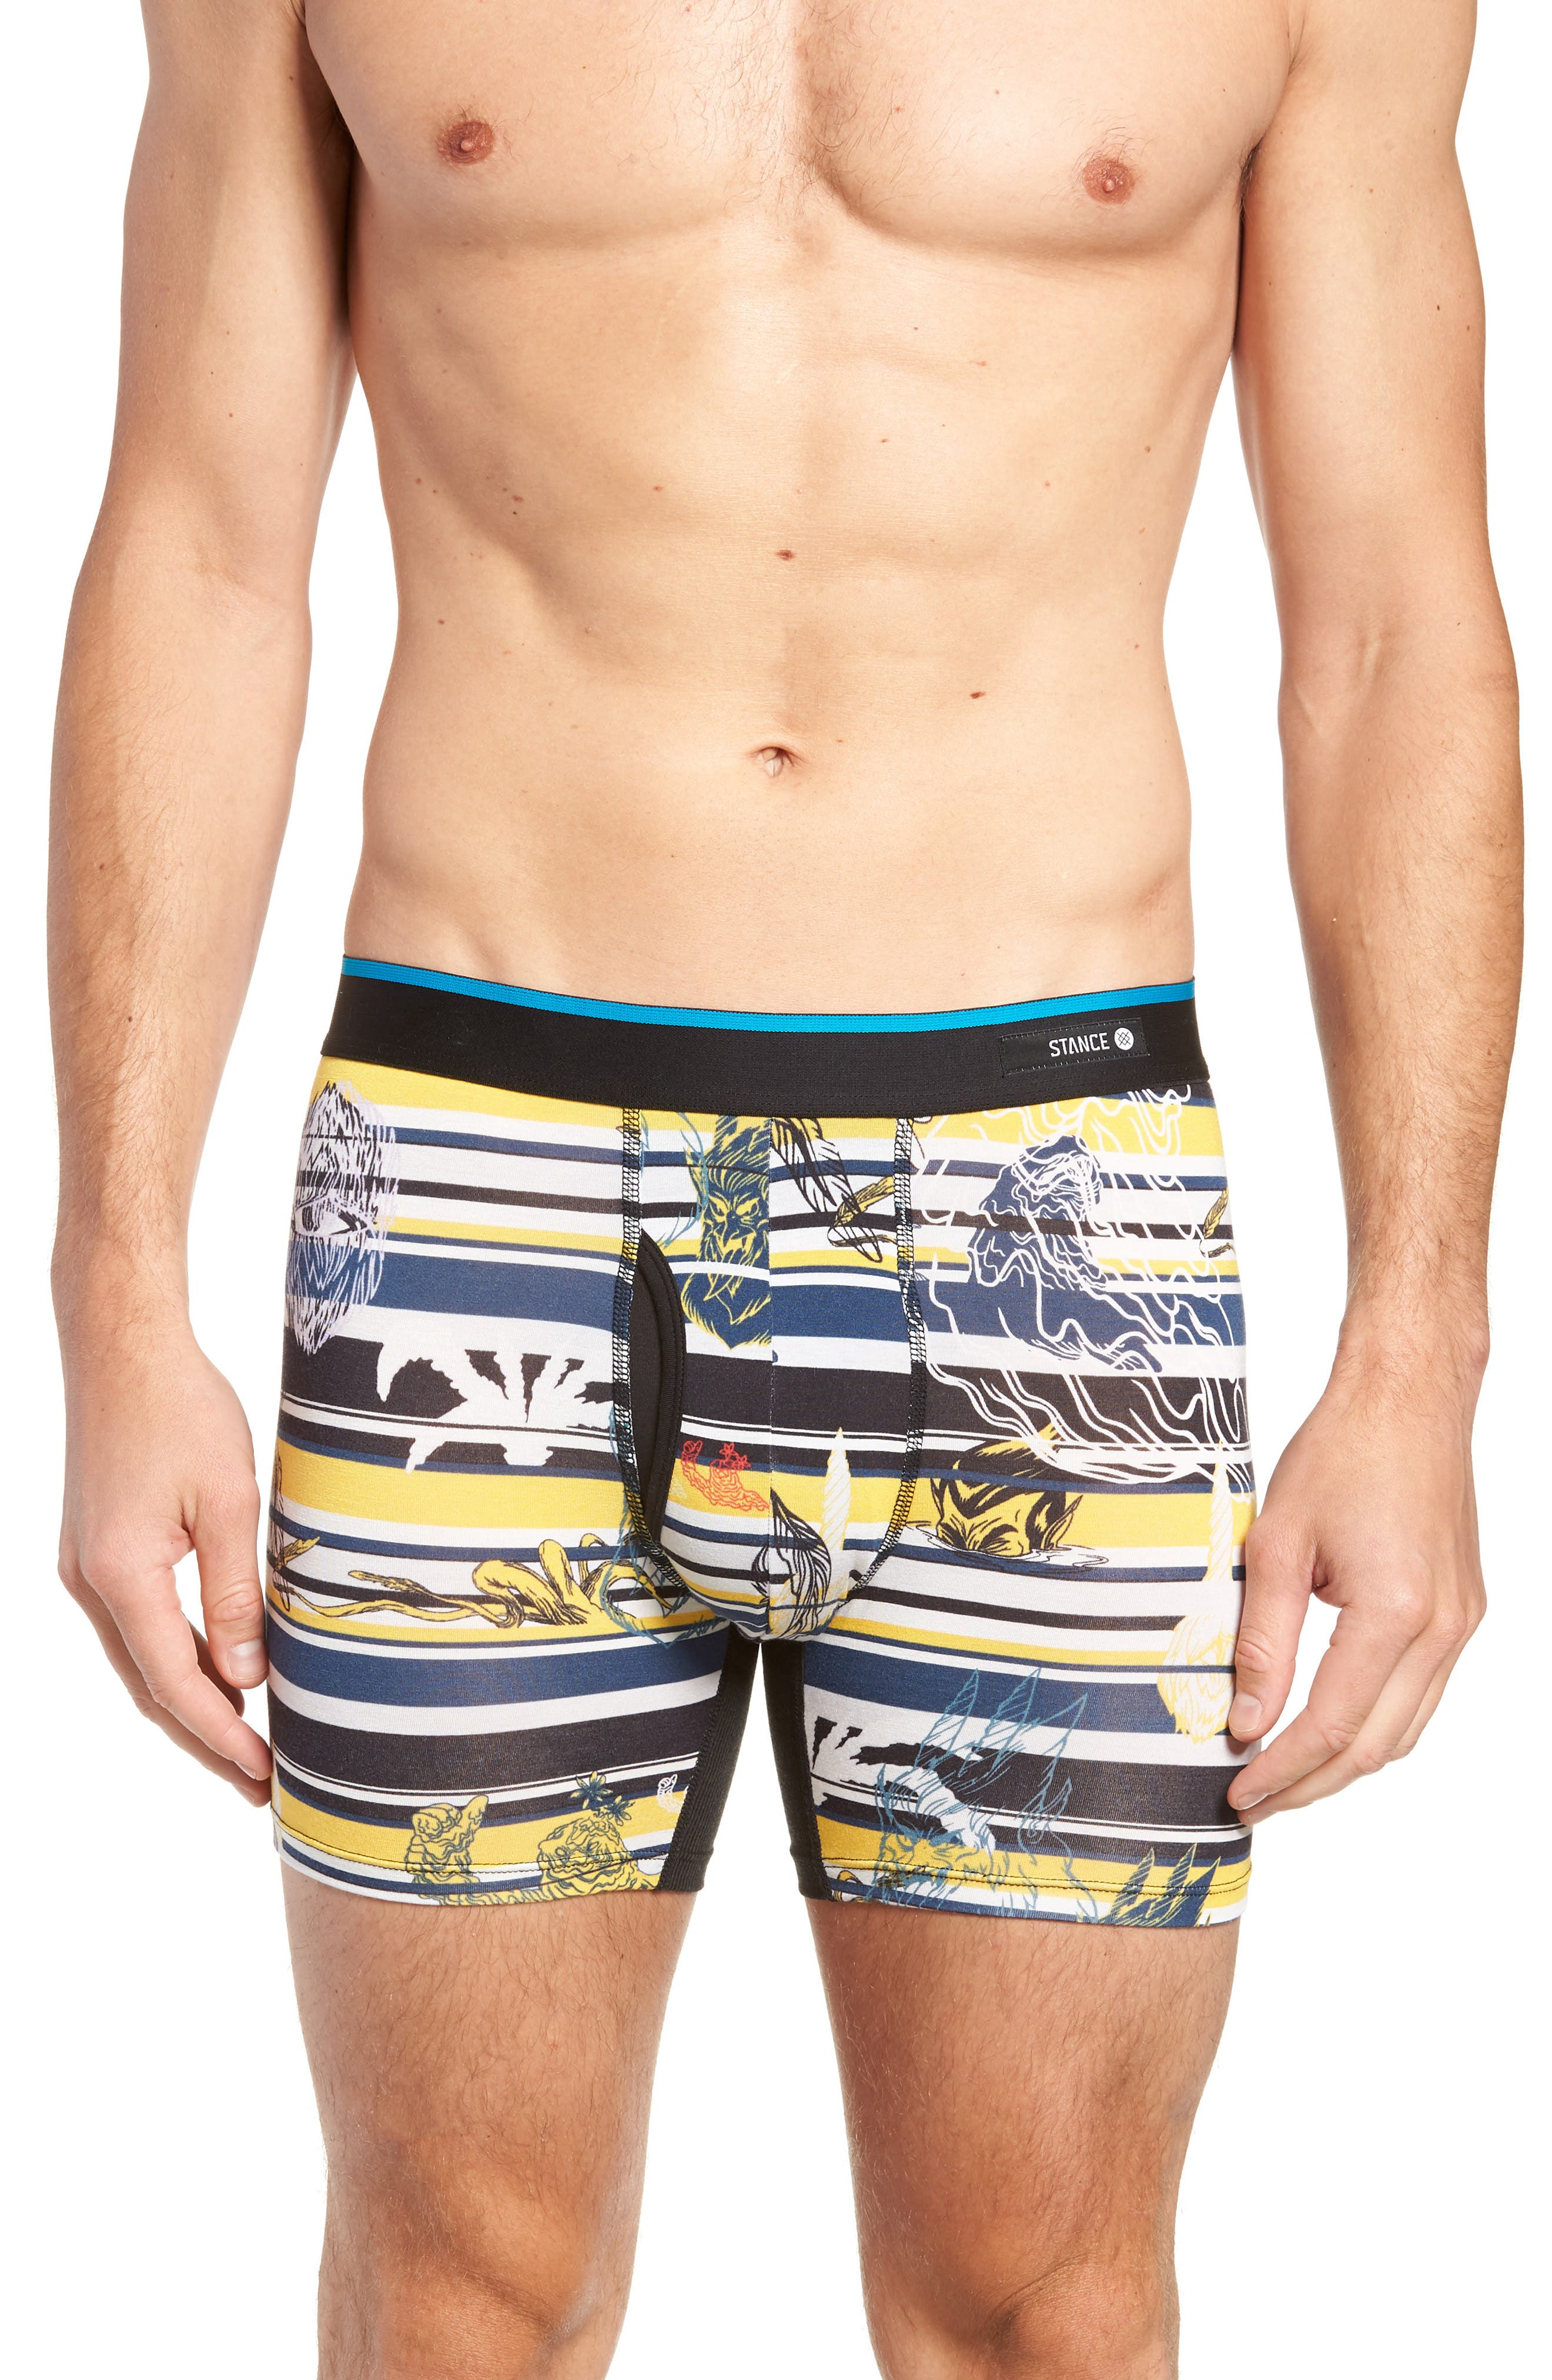 New Mythology Boxer Briefs,                         Main,                         color, YELLOW